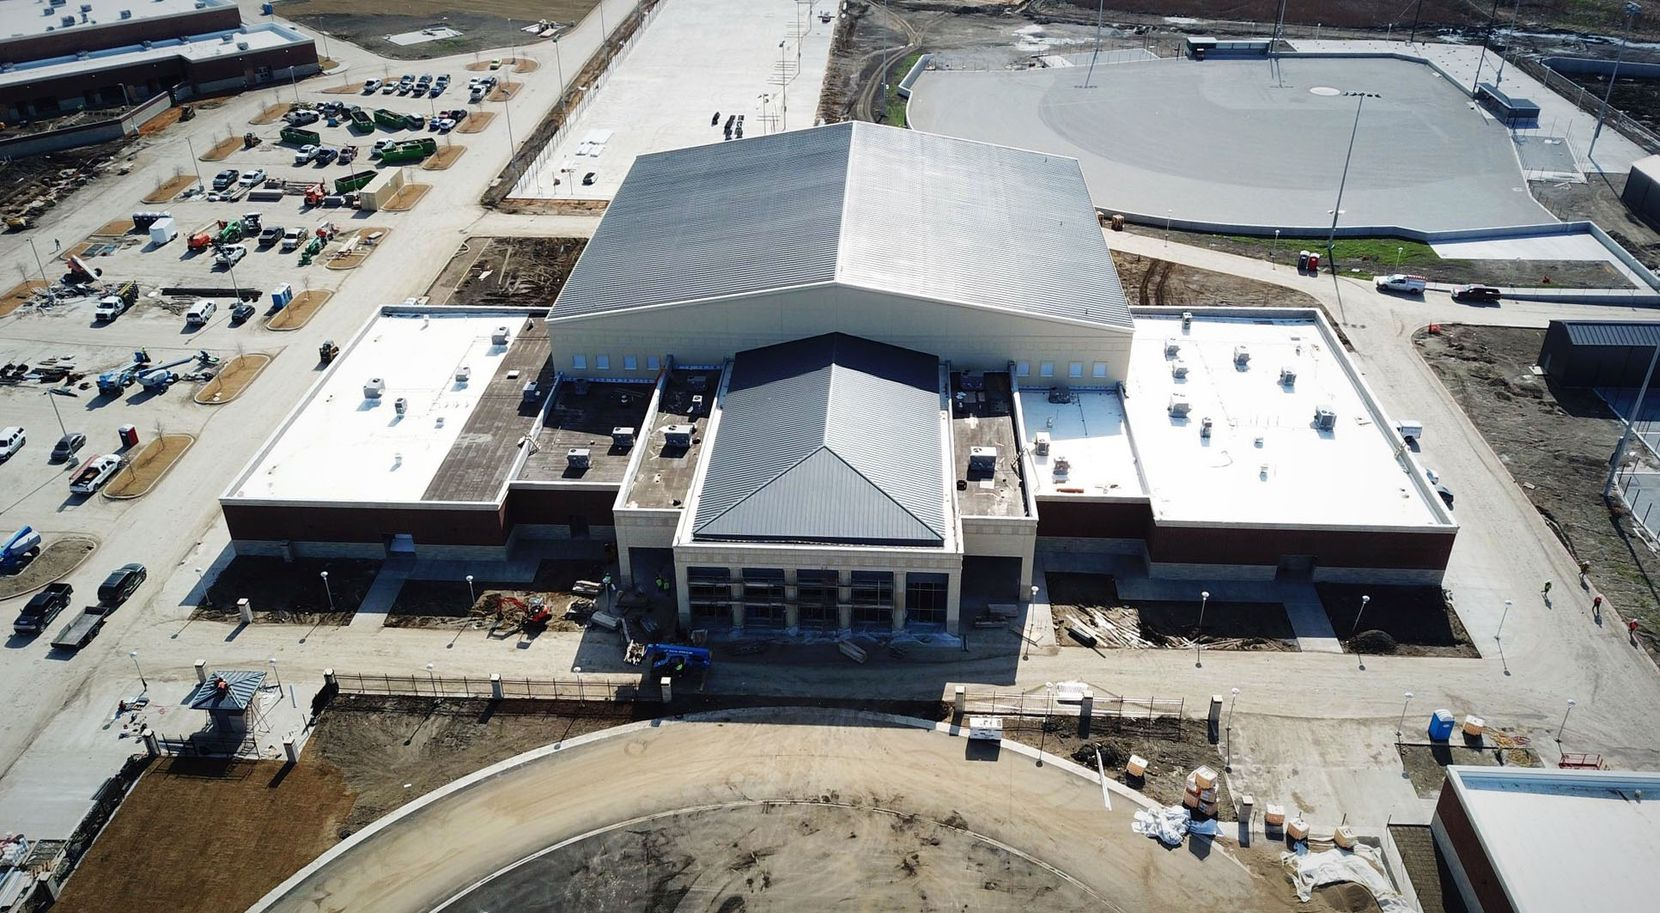 Prosper Rock Hill's football team will be playing its first year of varsity football when the school opens in fall, 2020. This photo shows the building housing indoor campus athletic facilities which were under construction in February 2020.